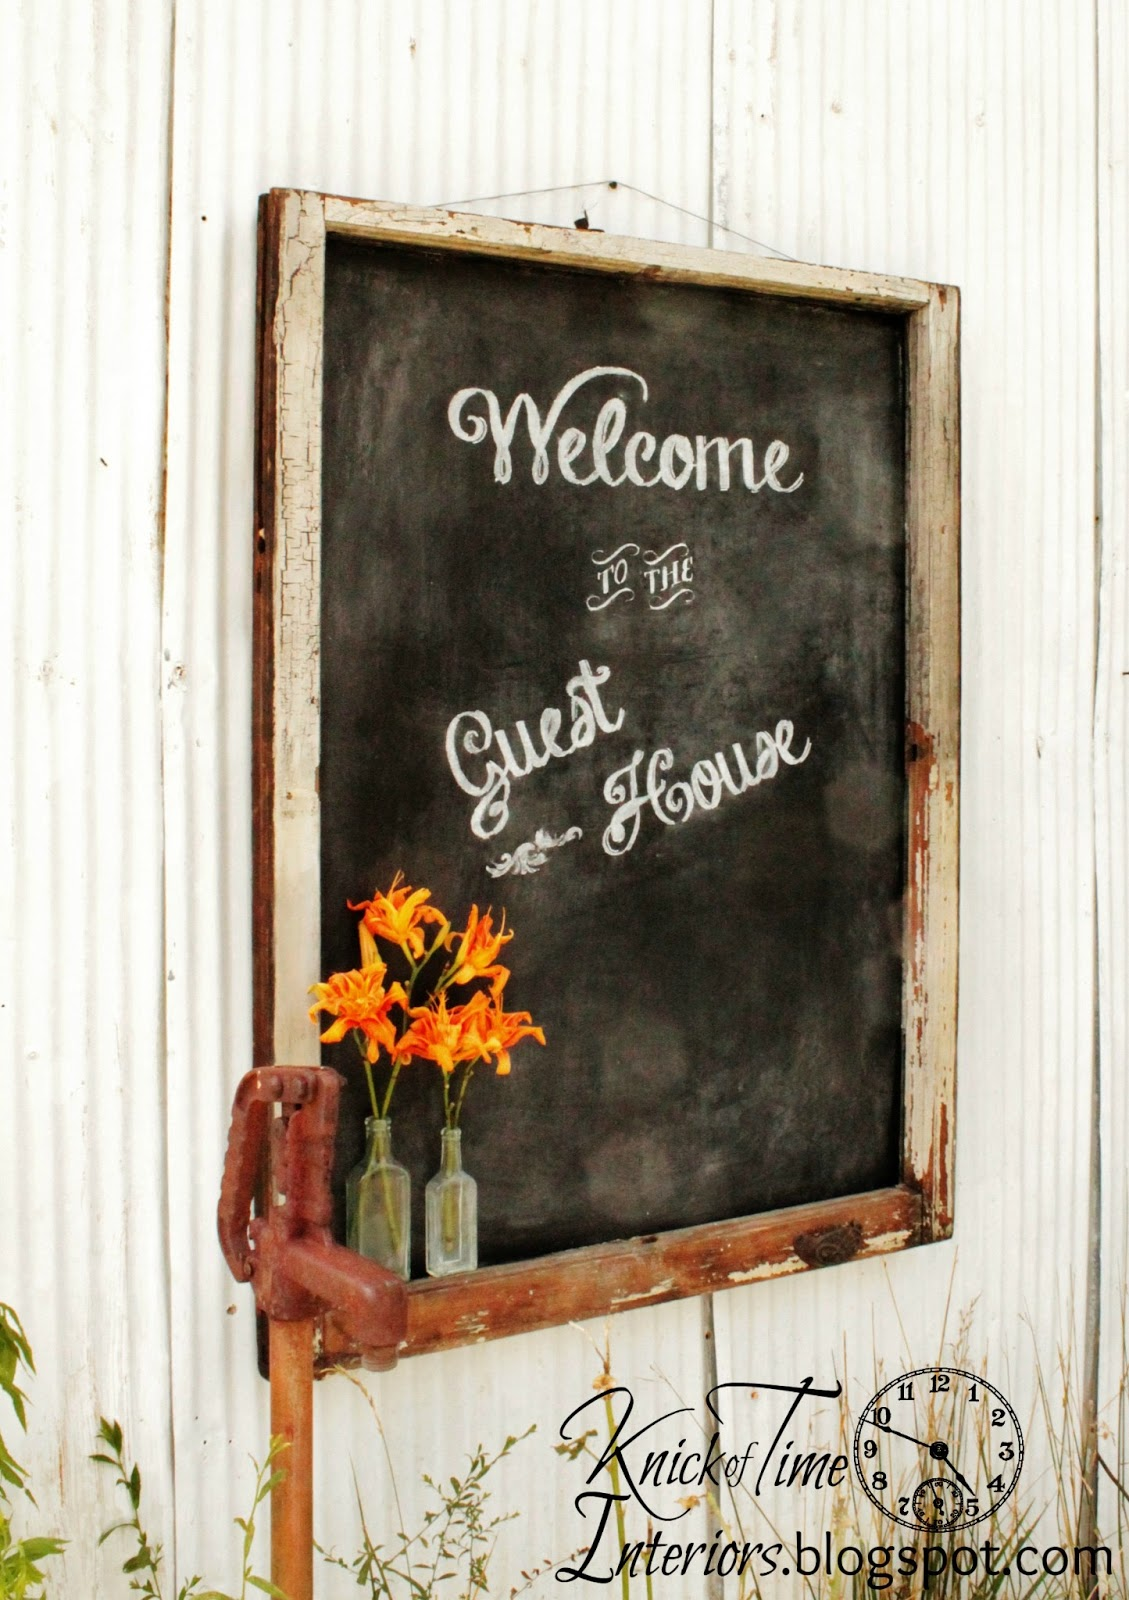 Diy Chalkboard Lettering Guest House Sign Knick Of Time